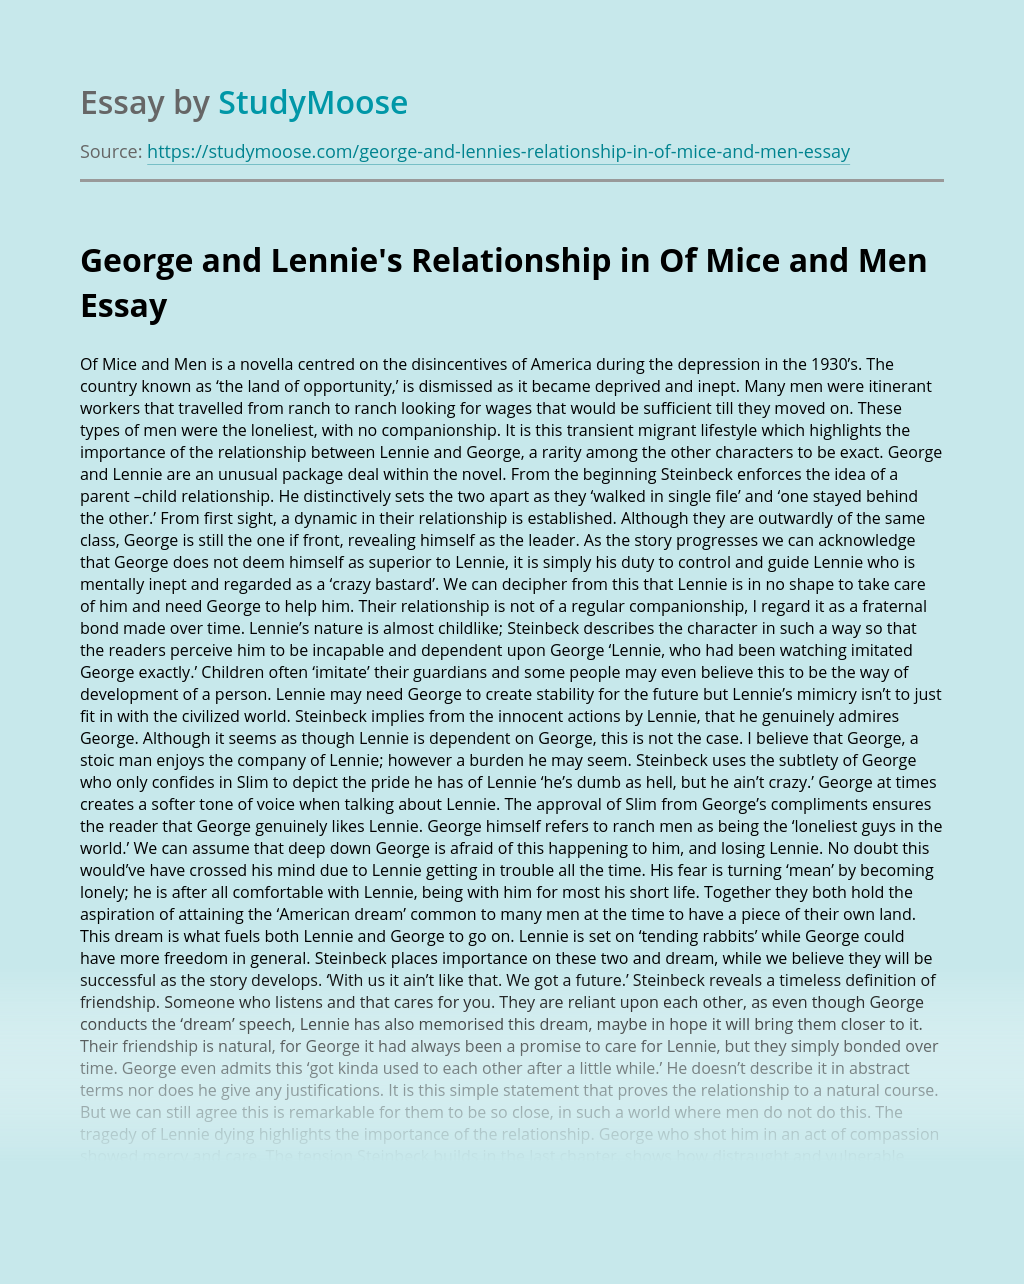 Companionship in of mice and men essay popular masters biography help